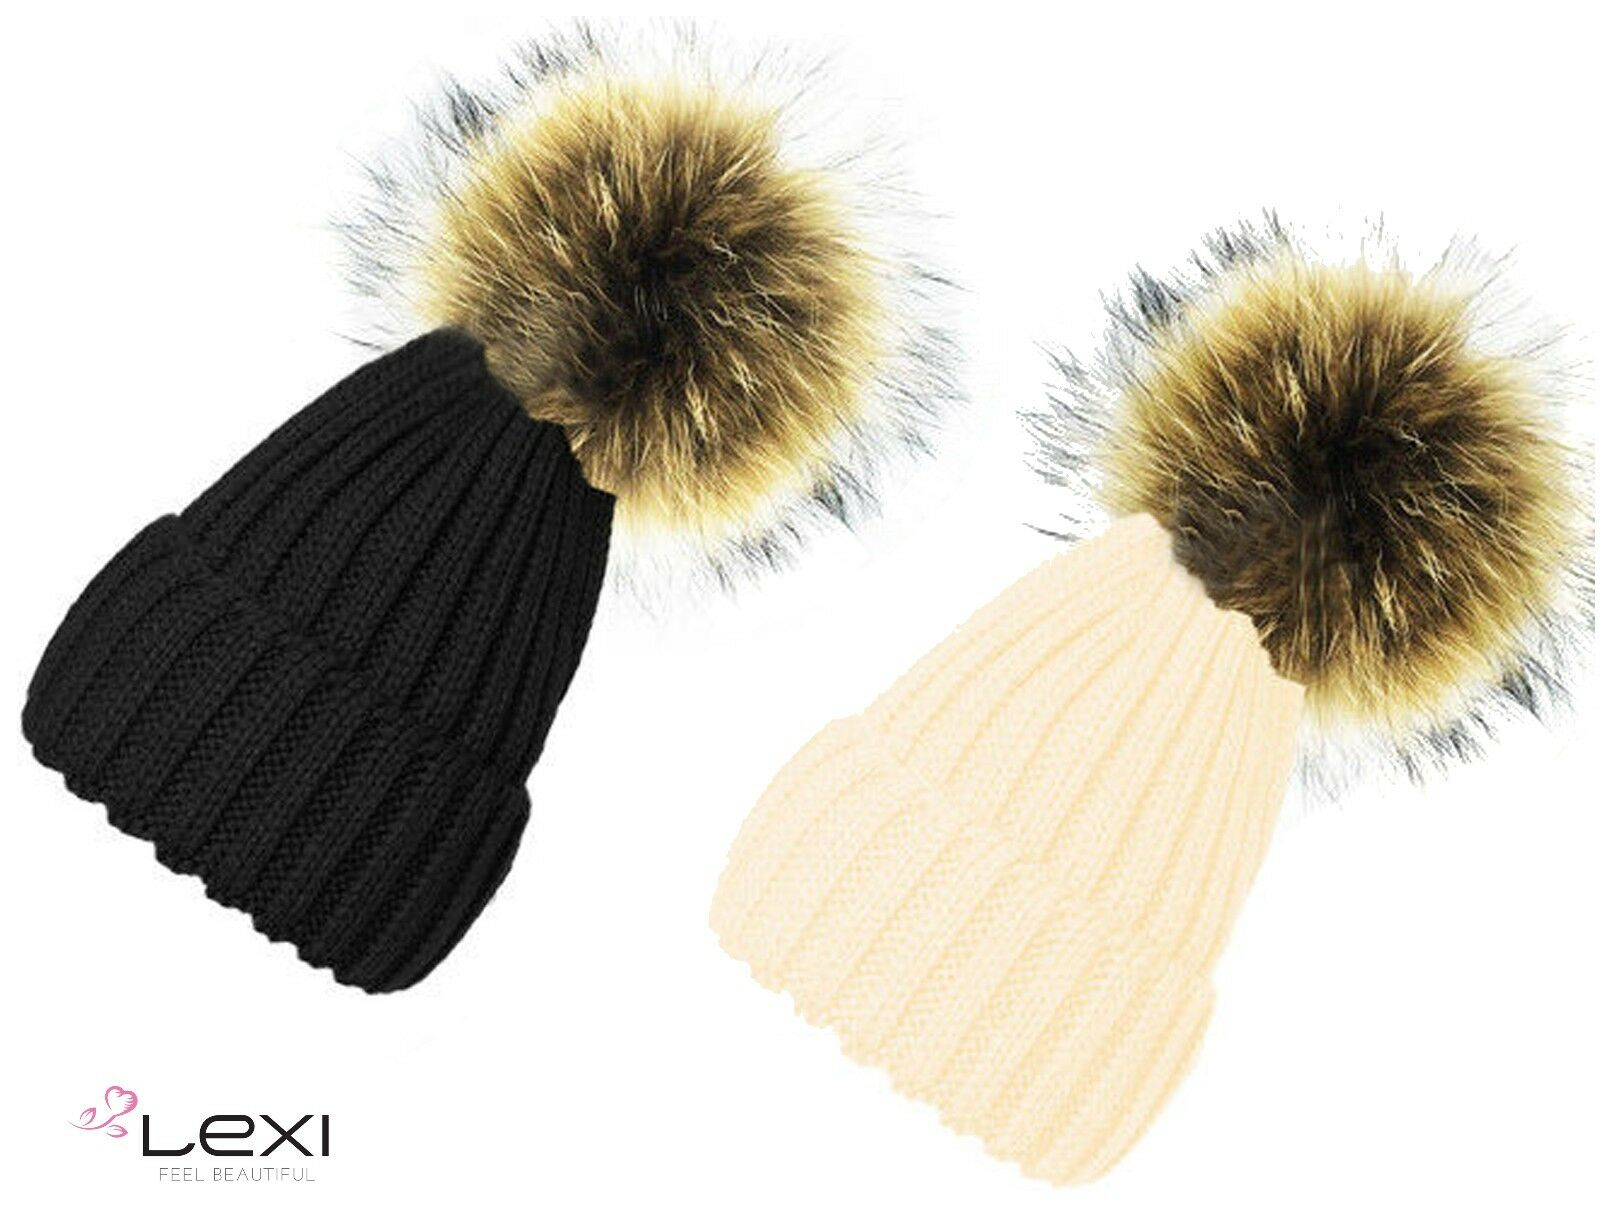 795aa4a74cd Details about Ladies Chunky Knitted Soft Woolly Beanie Faux Fur Bobble Pom  Pom Ski Winter Hats